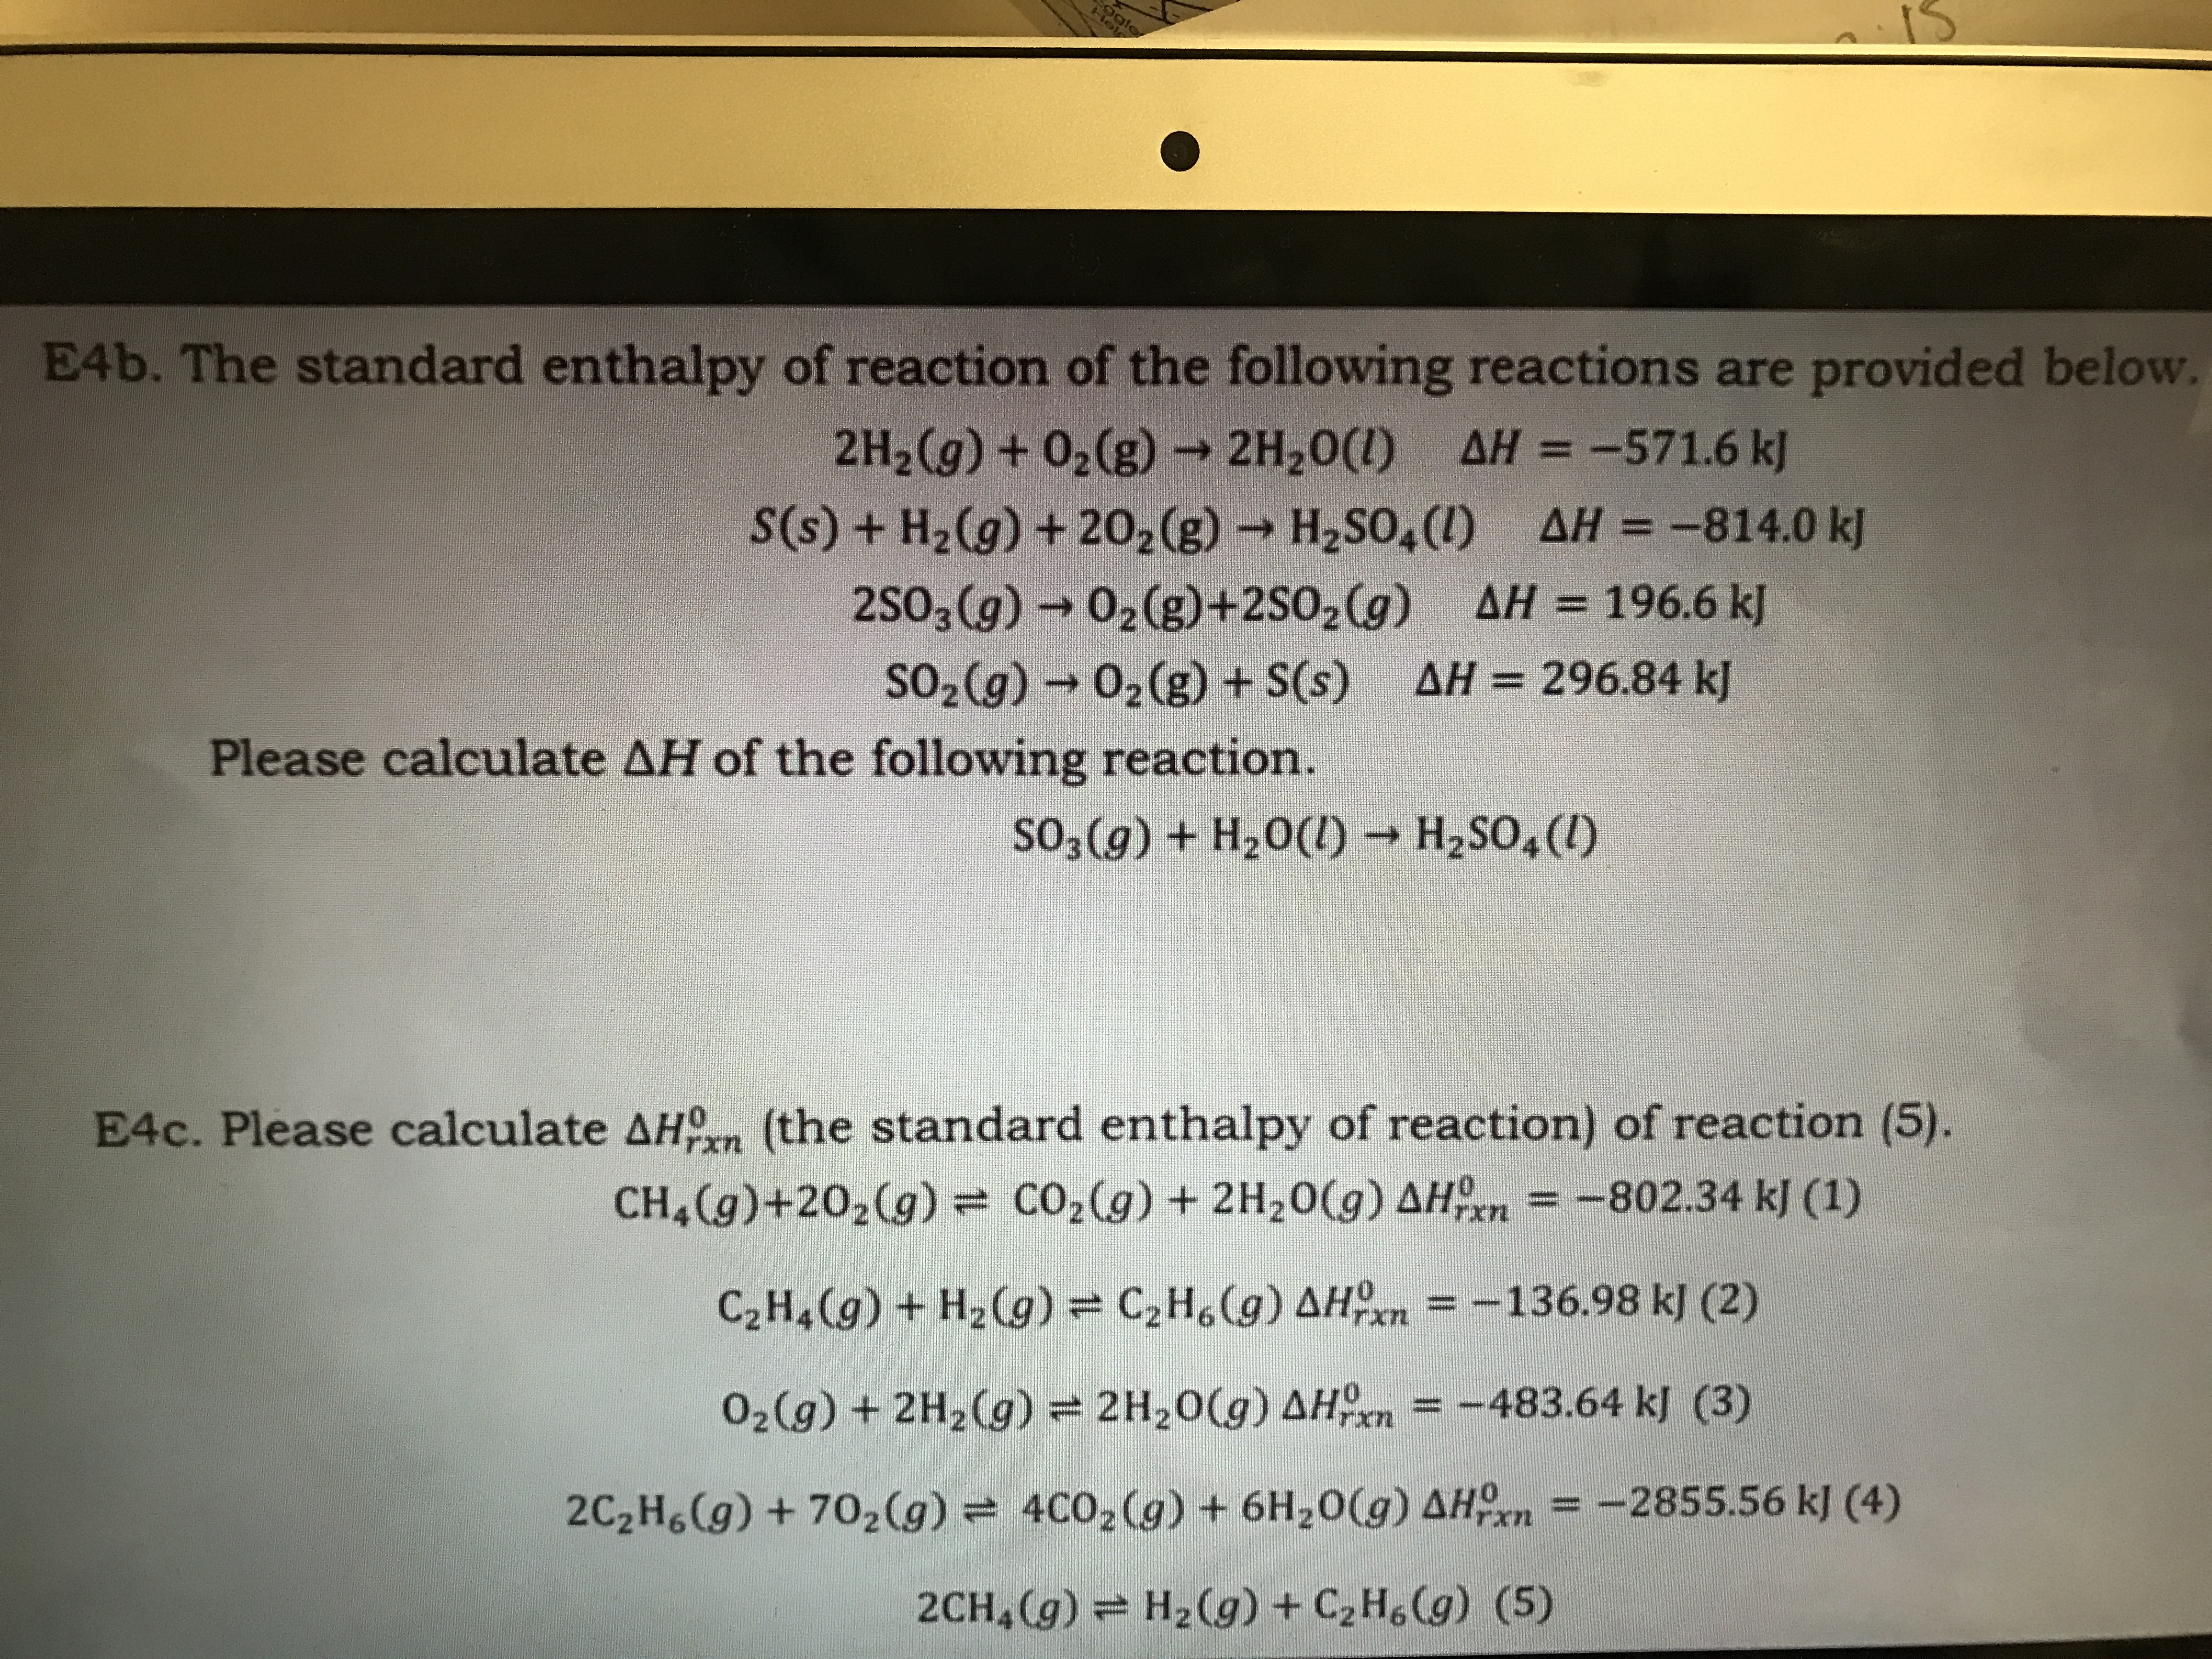 Hol E4b. The standard enthalpy of reaction of the following reactions are provided below. 2H2(g) +02(g)2H20(I) AH = -571.6 kj S(s)+ H2(g) +202(g) H2SO4() AH-814.0 k] 2SO3(g) 02(g)+2SO2 (g) AH 196.6 k SO2(g) 02(g) +S(s) AH = 296.84 kJ Please calculate AH of the following reaction. so3 (g) + H20() H2SO,(I) E4c. Please calculate AH (the standard enthalpy of reaction) of reaction (5). CH&(g)+202(g) = CO2(g) + 2H20(g) AHn -802.34 kJ (1) =-136.98 k] (2) C2H4(g)+H2(g) = C2H6(g) AHOn =-483.64 kl (3) O2(g) + 2H2(g) = 2H20(g) AH 4C02(g) + 6H20(g) AHOn = -2855.56 kJ (4) 2C2H6(g) +702(g) H2(g) +C2H6(g) (5) 2CH (g)